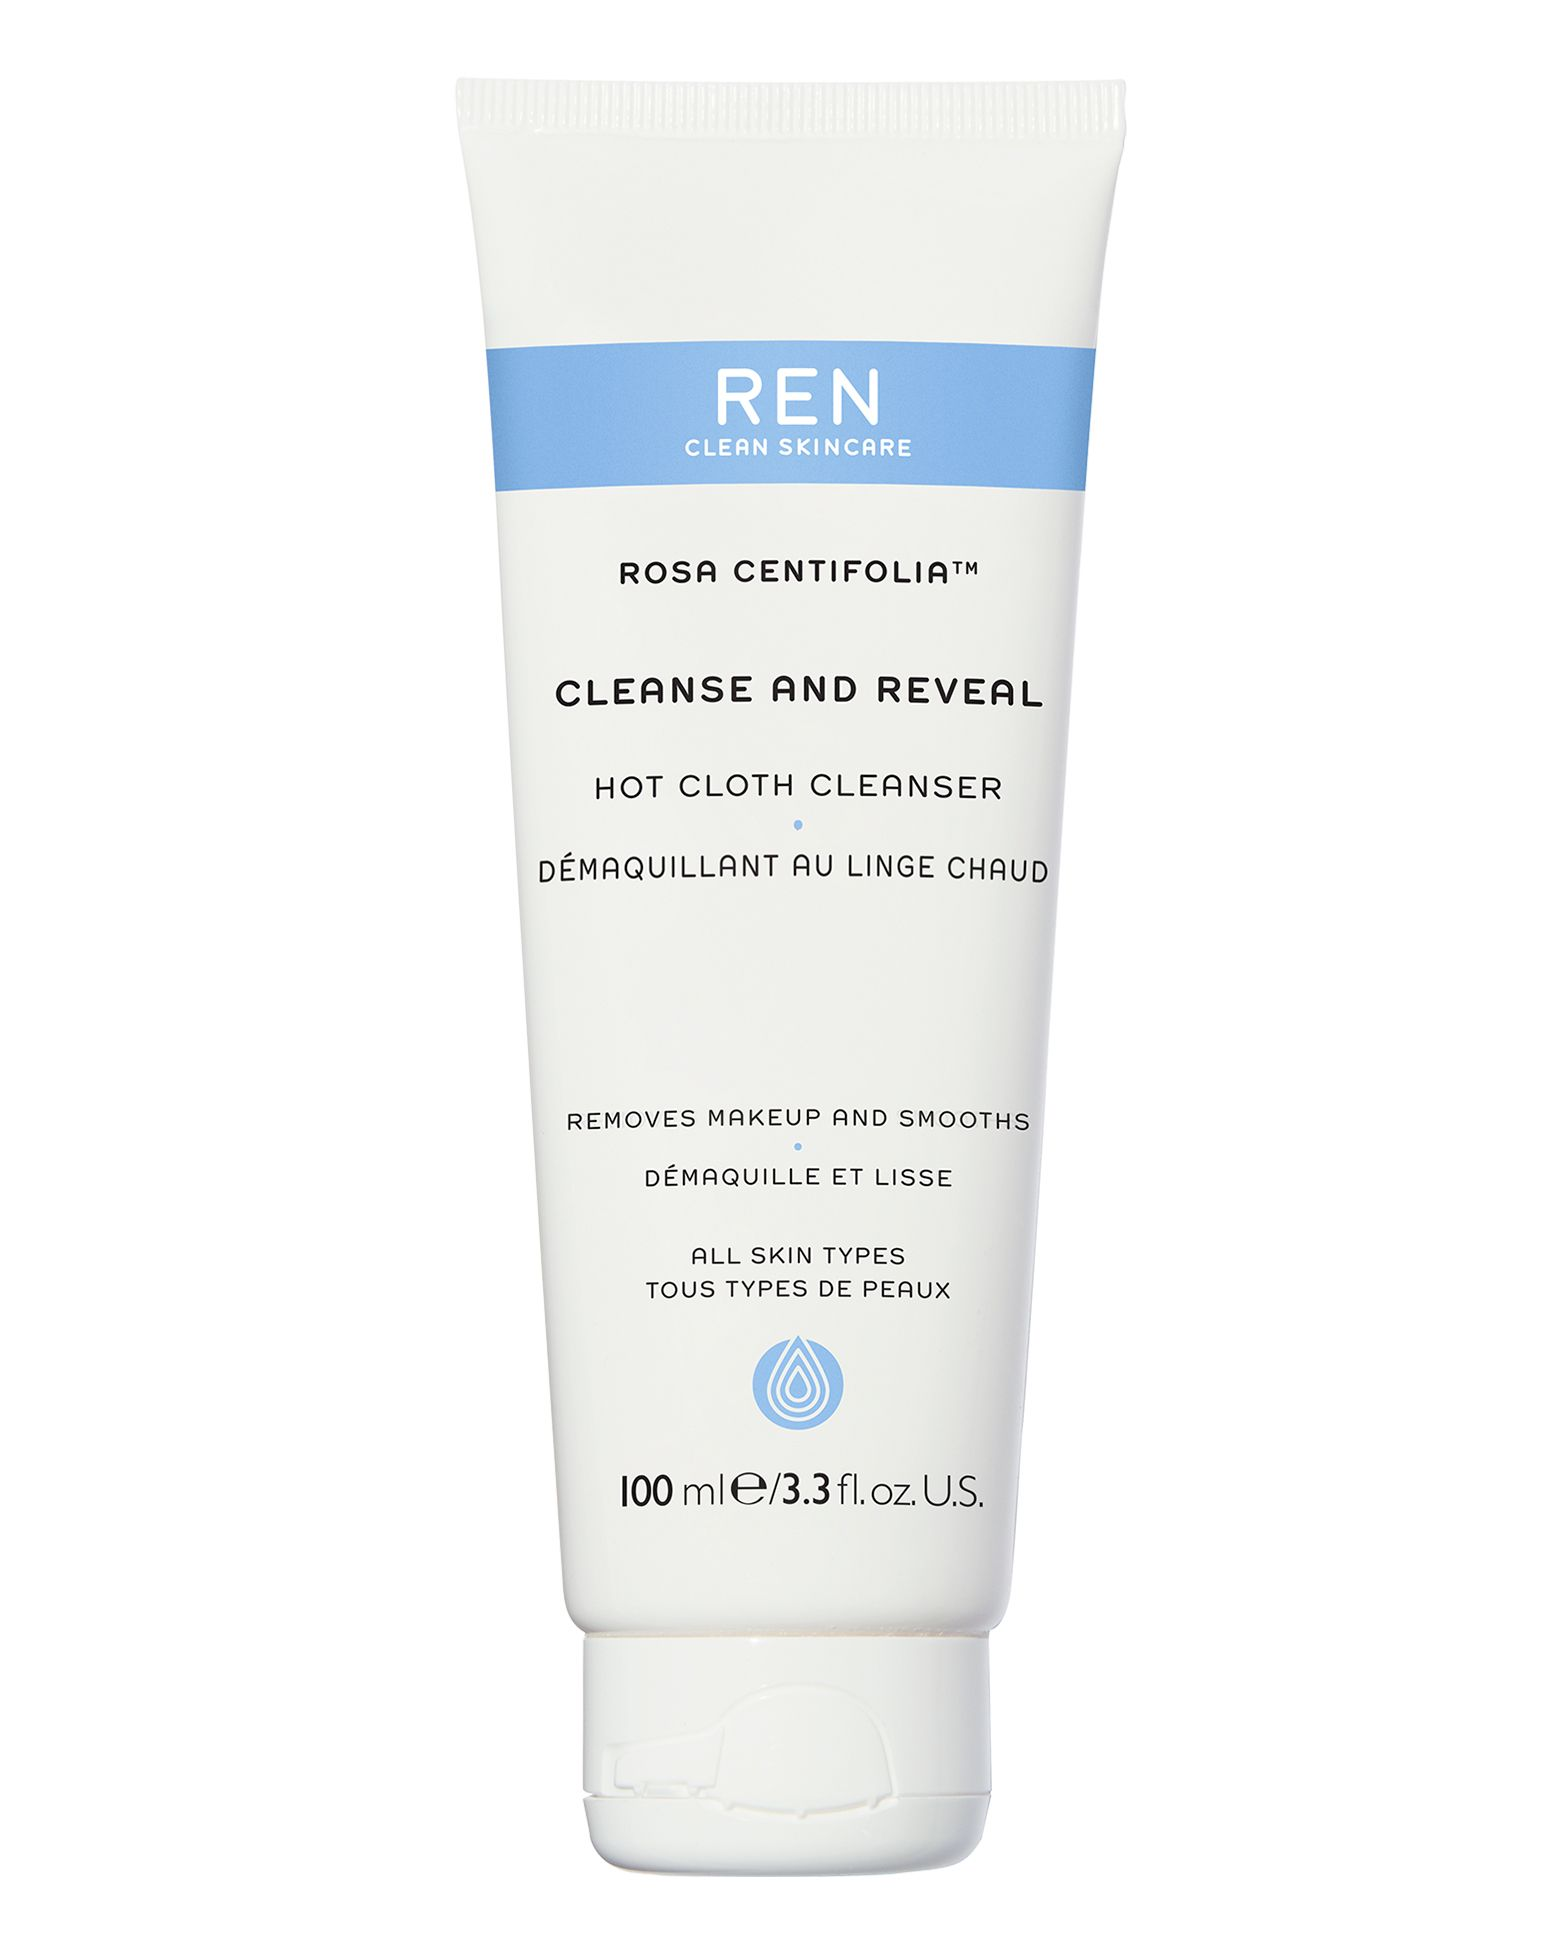 Rosa Centifolia Cleanse And Reveal Hot Cloth Cleanser In 2018 Berrisom Collagen Intensive Firming Cream 50gr Shop By Ren Clean Skincare At Cult Beauty